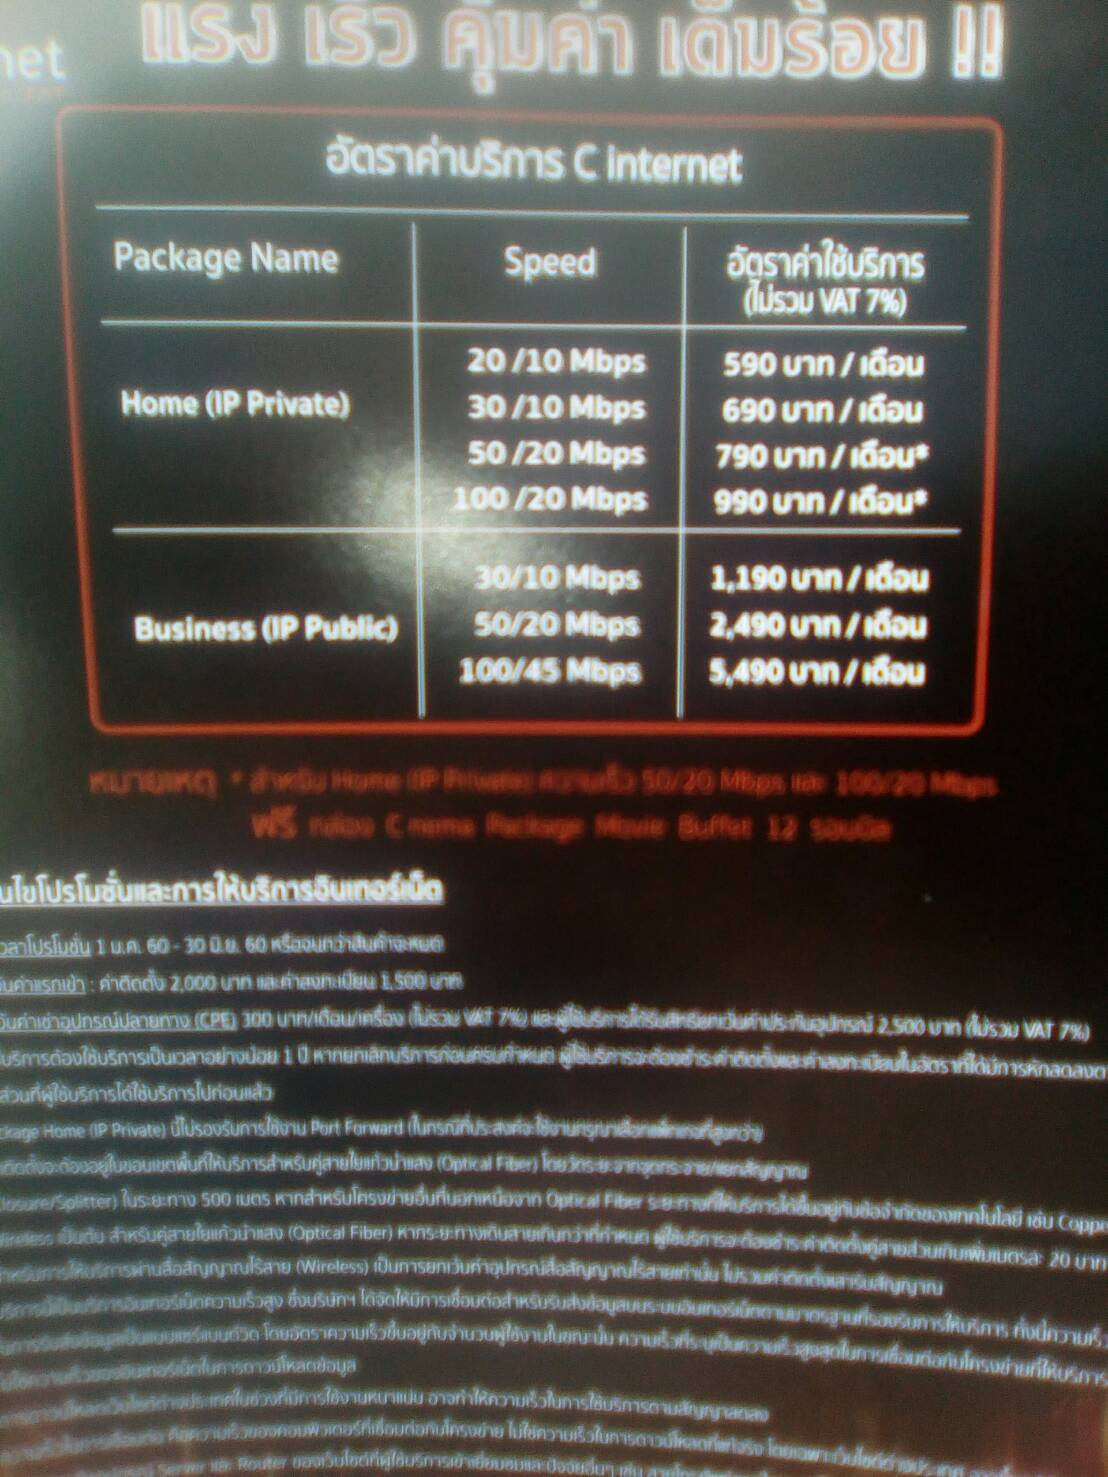 C internet Package Name Speed 20/10 Mbps